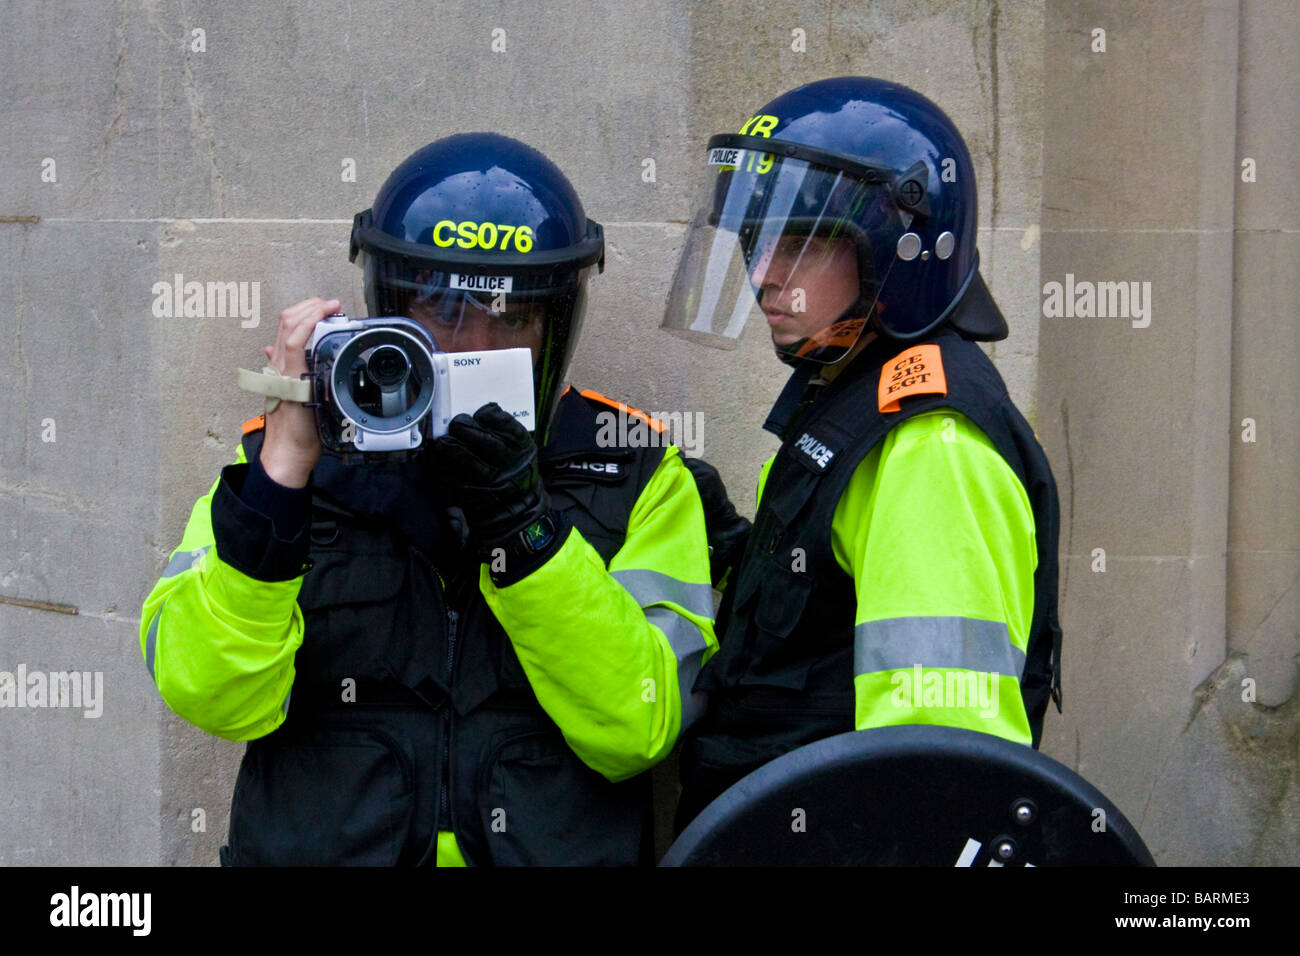 Riot police filming the crowd and events during may day protests in Brighton, Sussex, UK JPH0193 - Stock Image